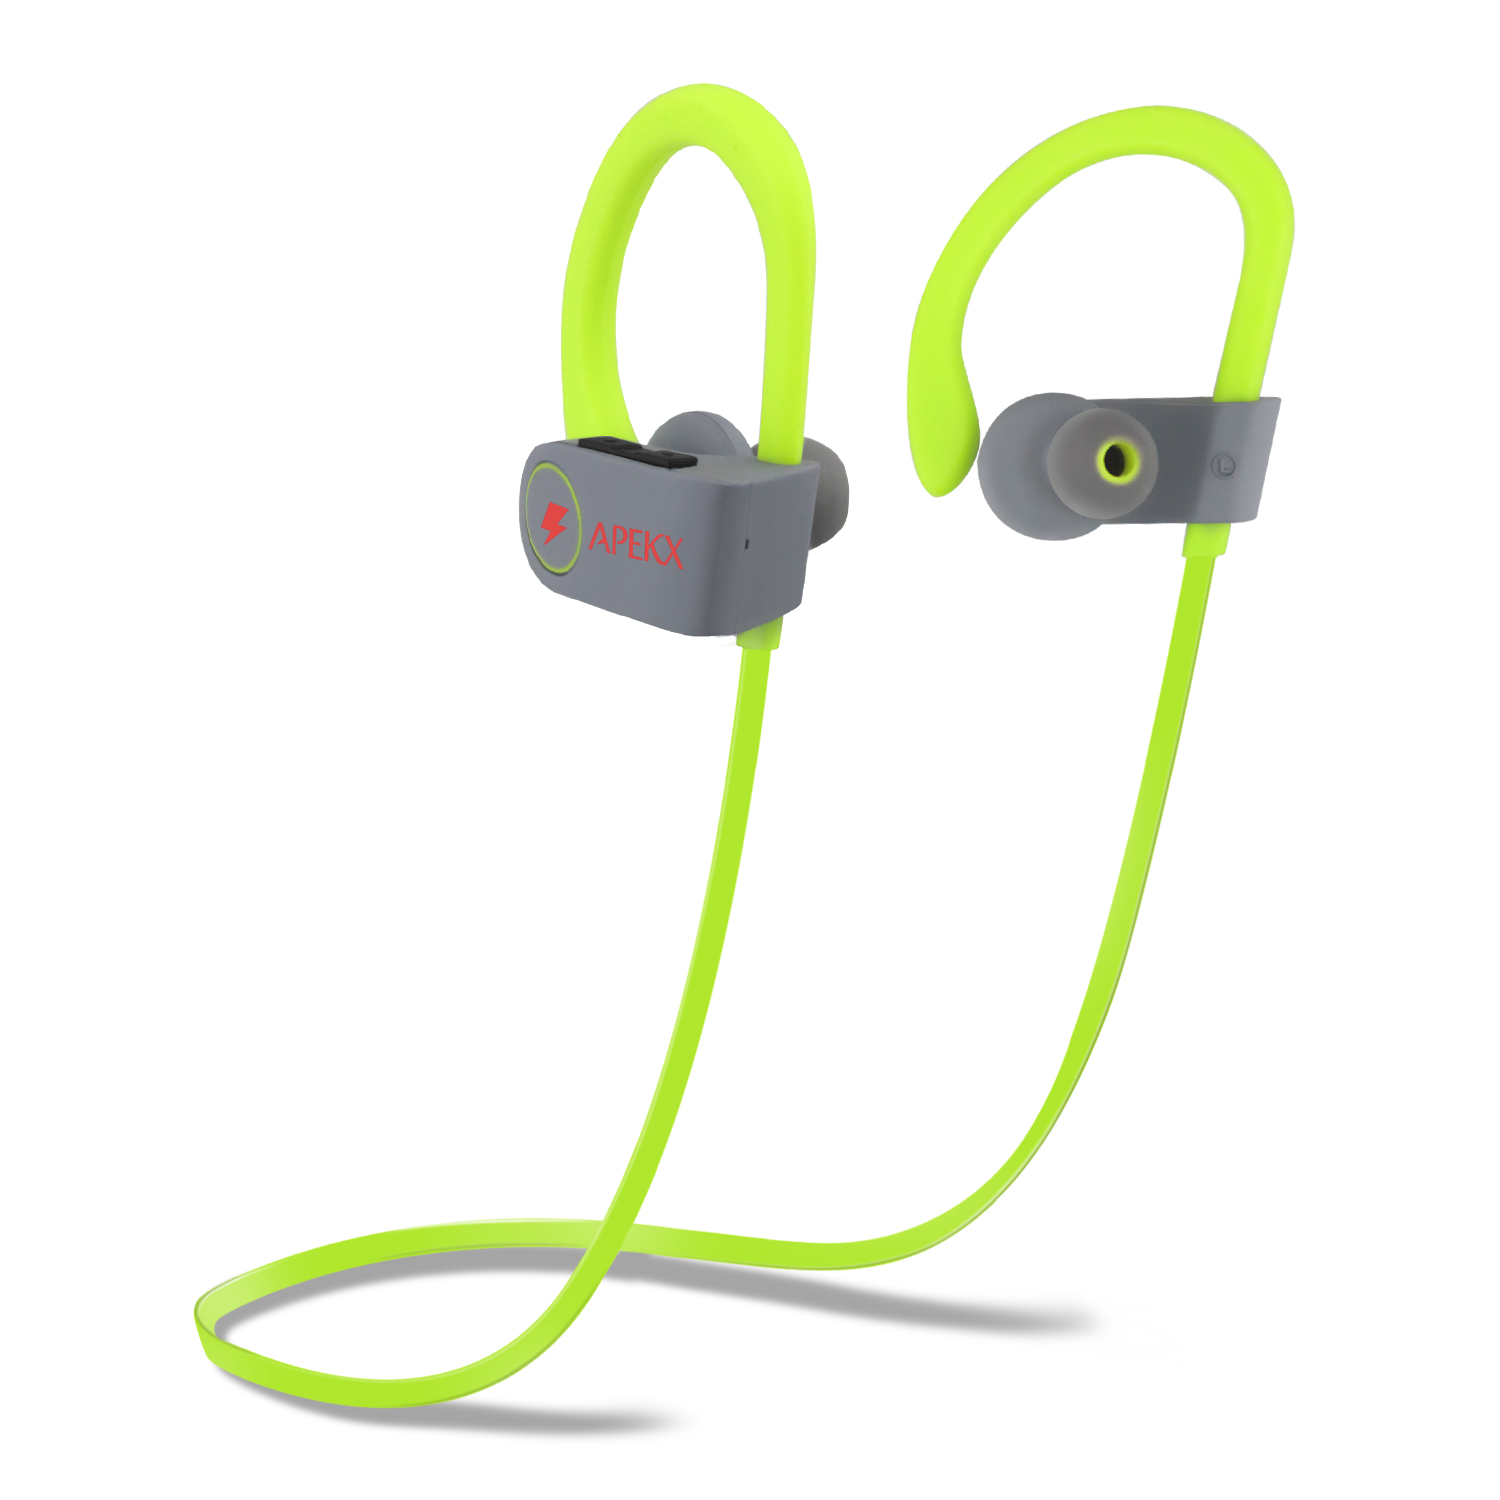 Apekx Bluetooth Earbuds Sport Wireless Headphones In Ear Lightweight For Running Gym Sweatproof Secure Fit Headset With Mic Green 云速成美站创业版